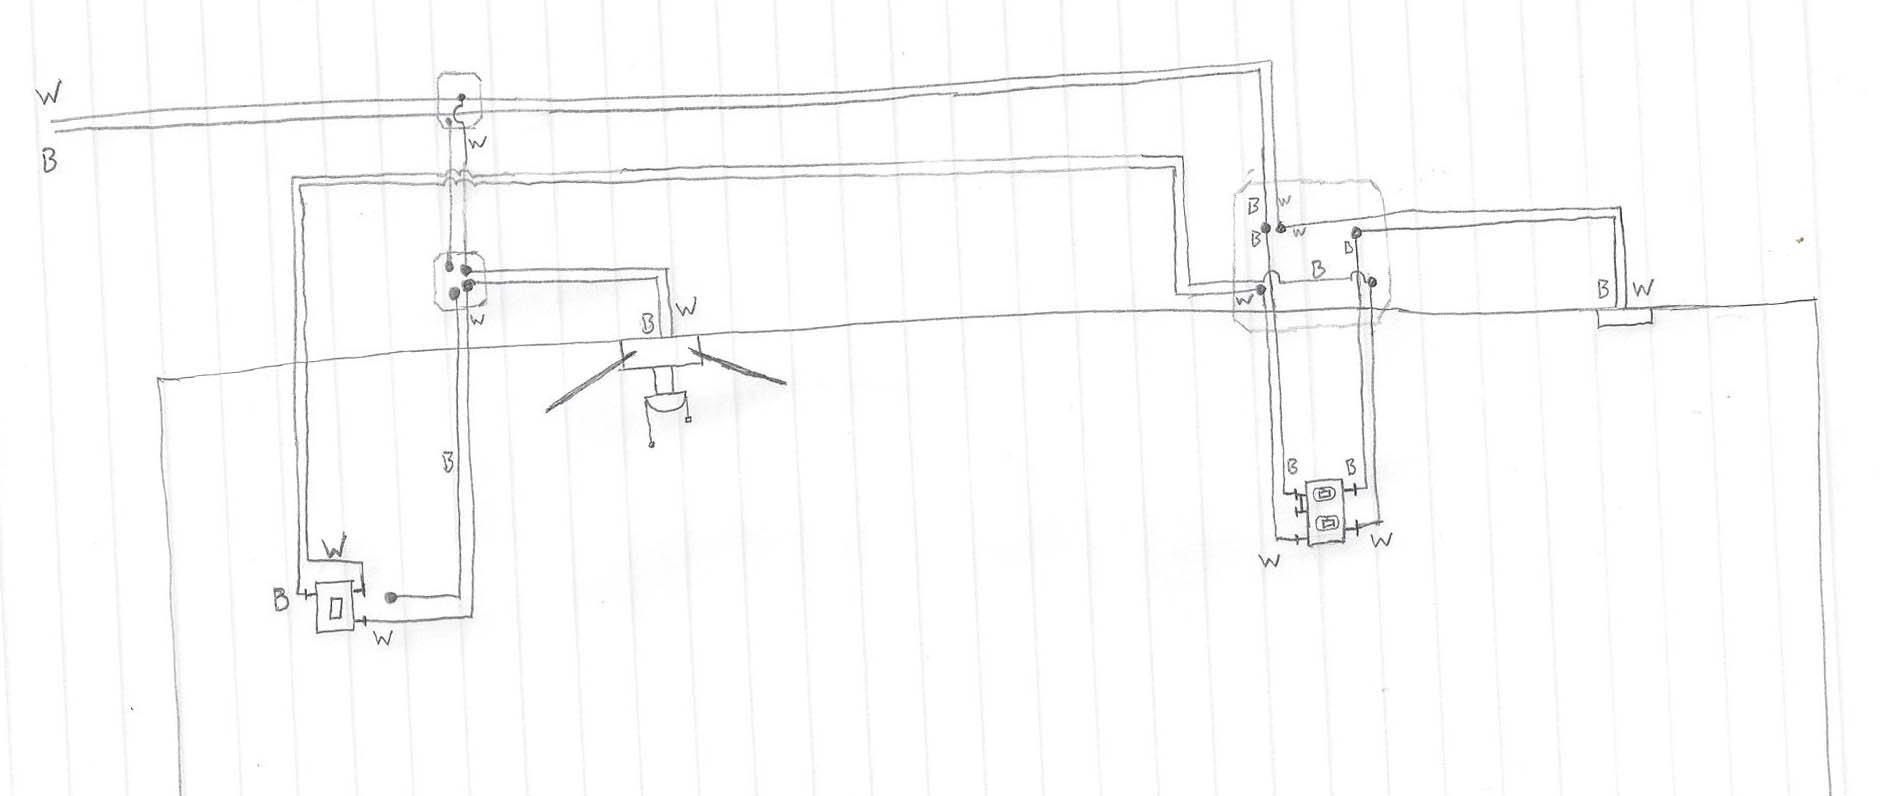 Wrg Wiring Diagram 3 Way 1 Pole